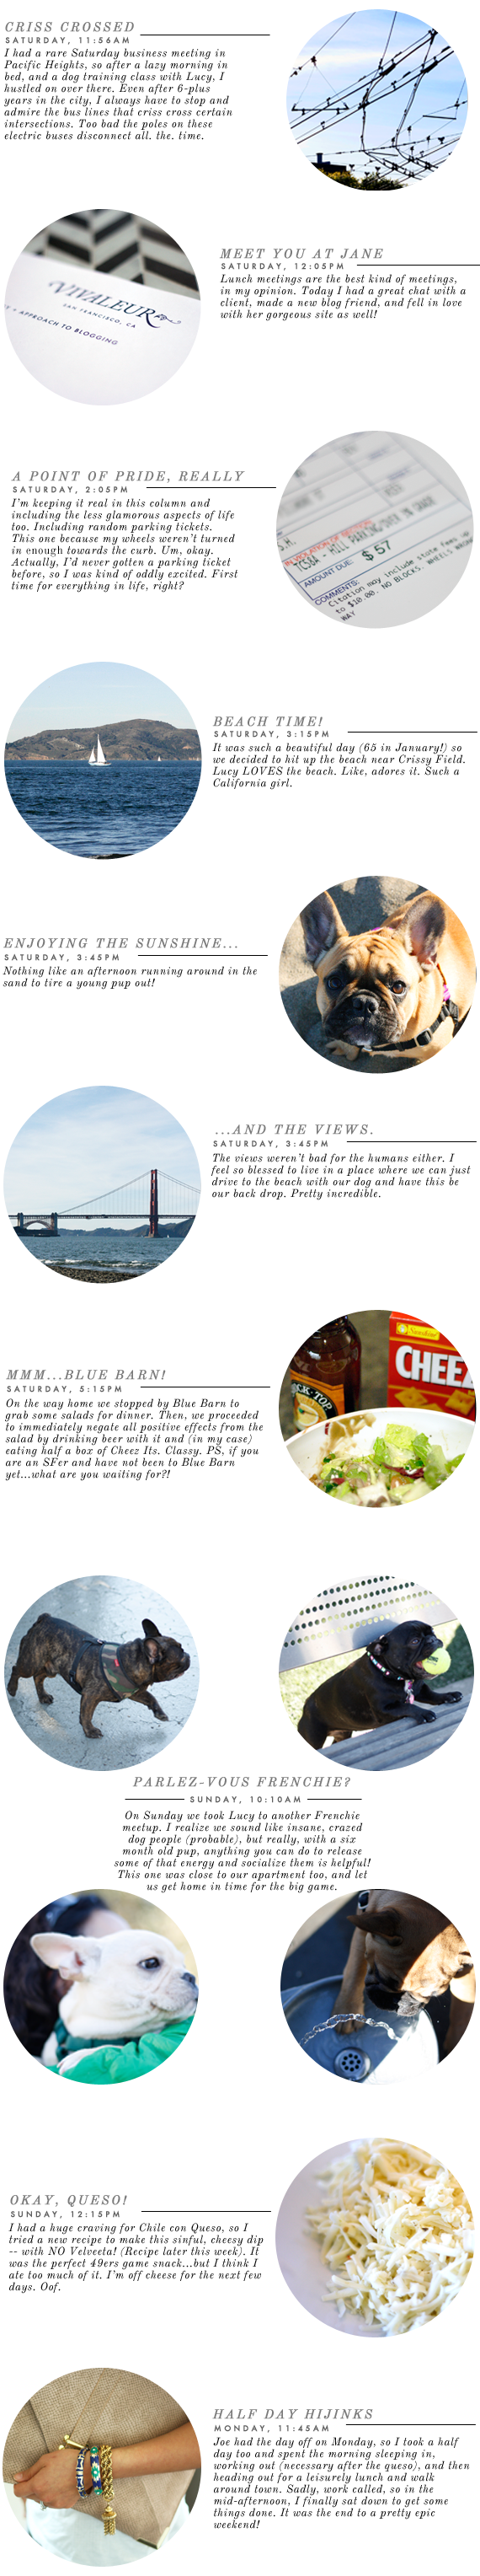 a day in the life | via vmac+cheese